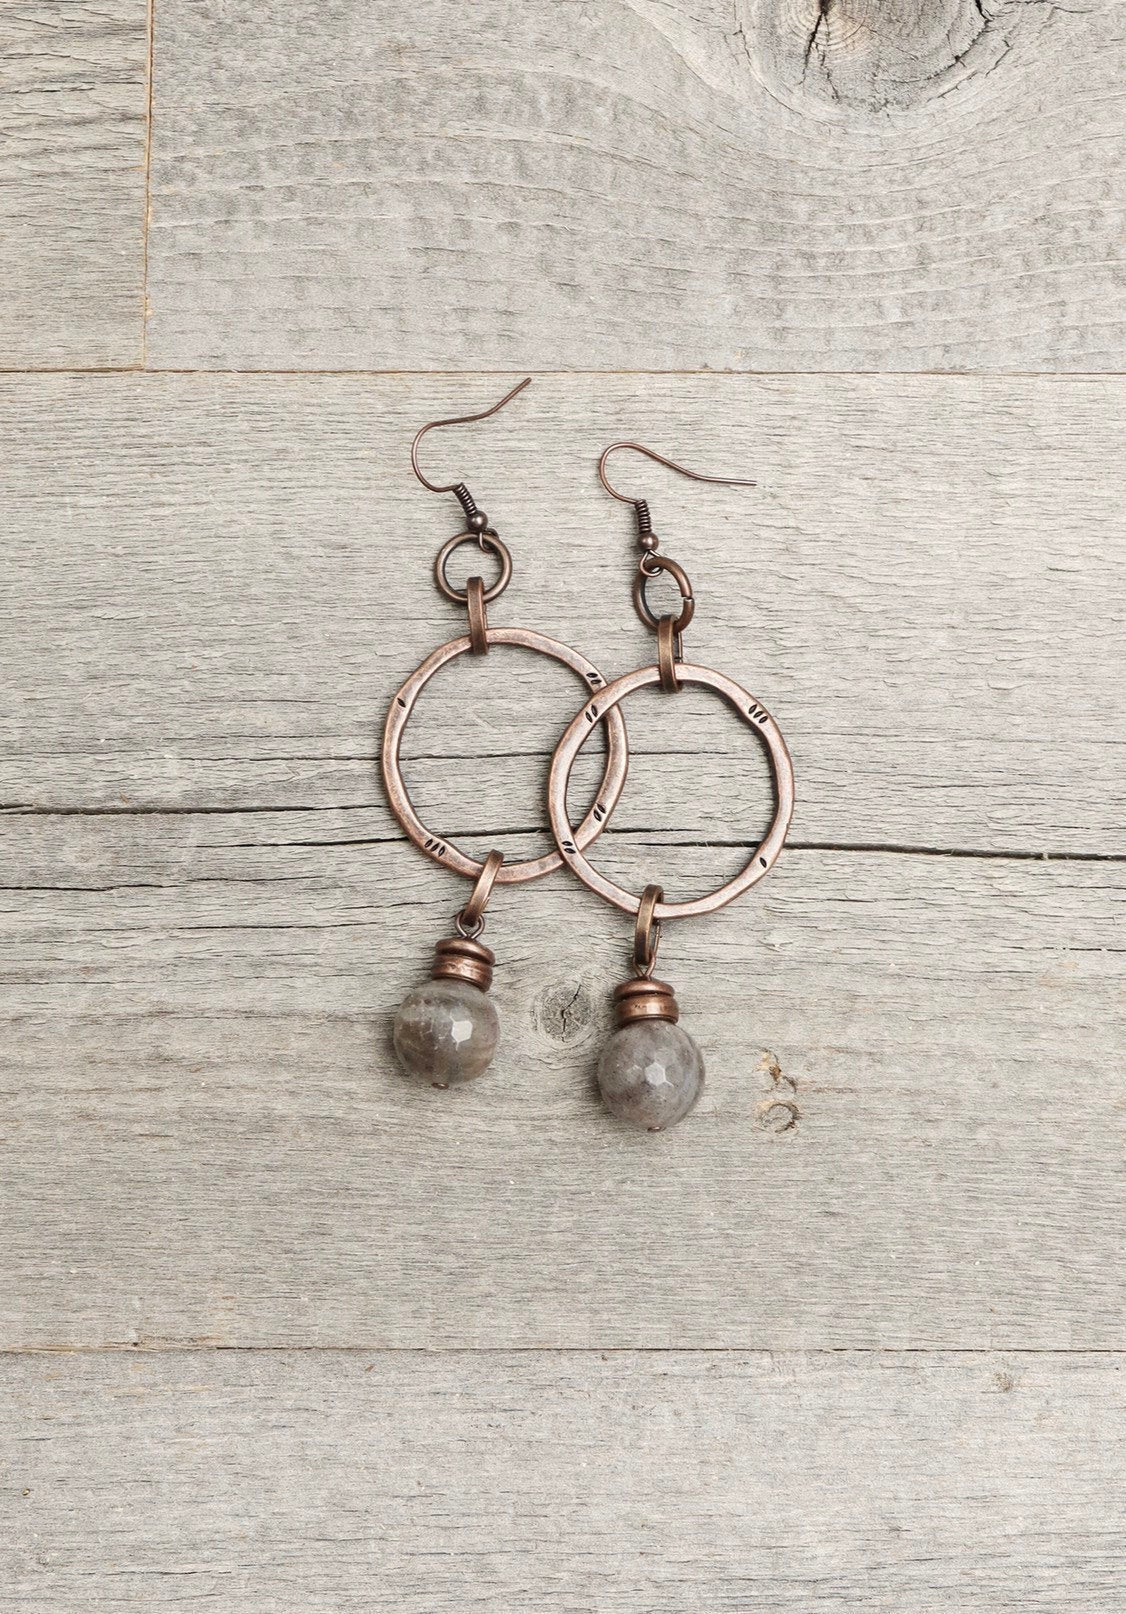 Labradorite Copper Gray Natural Stone Loop Ring Boho Gypsy Earrings - Simple Big Earthy Circle Large Metal Round Bohemian Rustic Jewelry